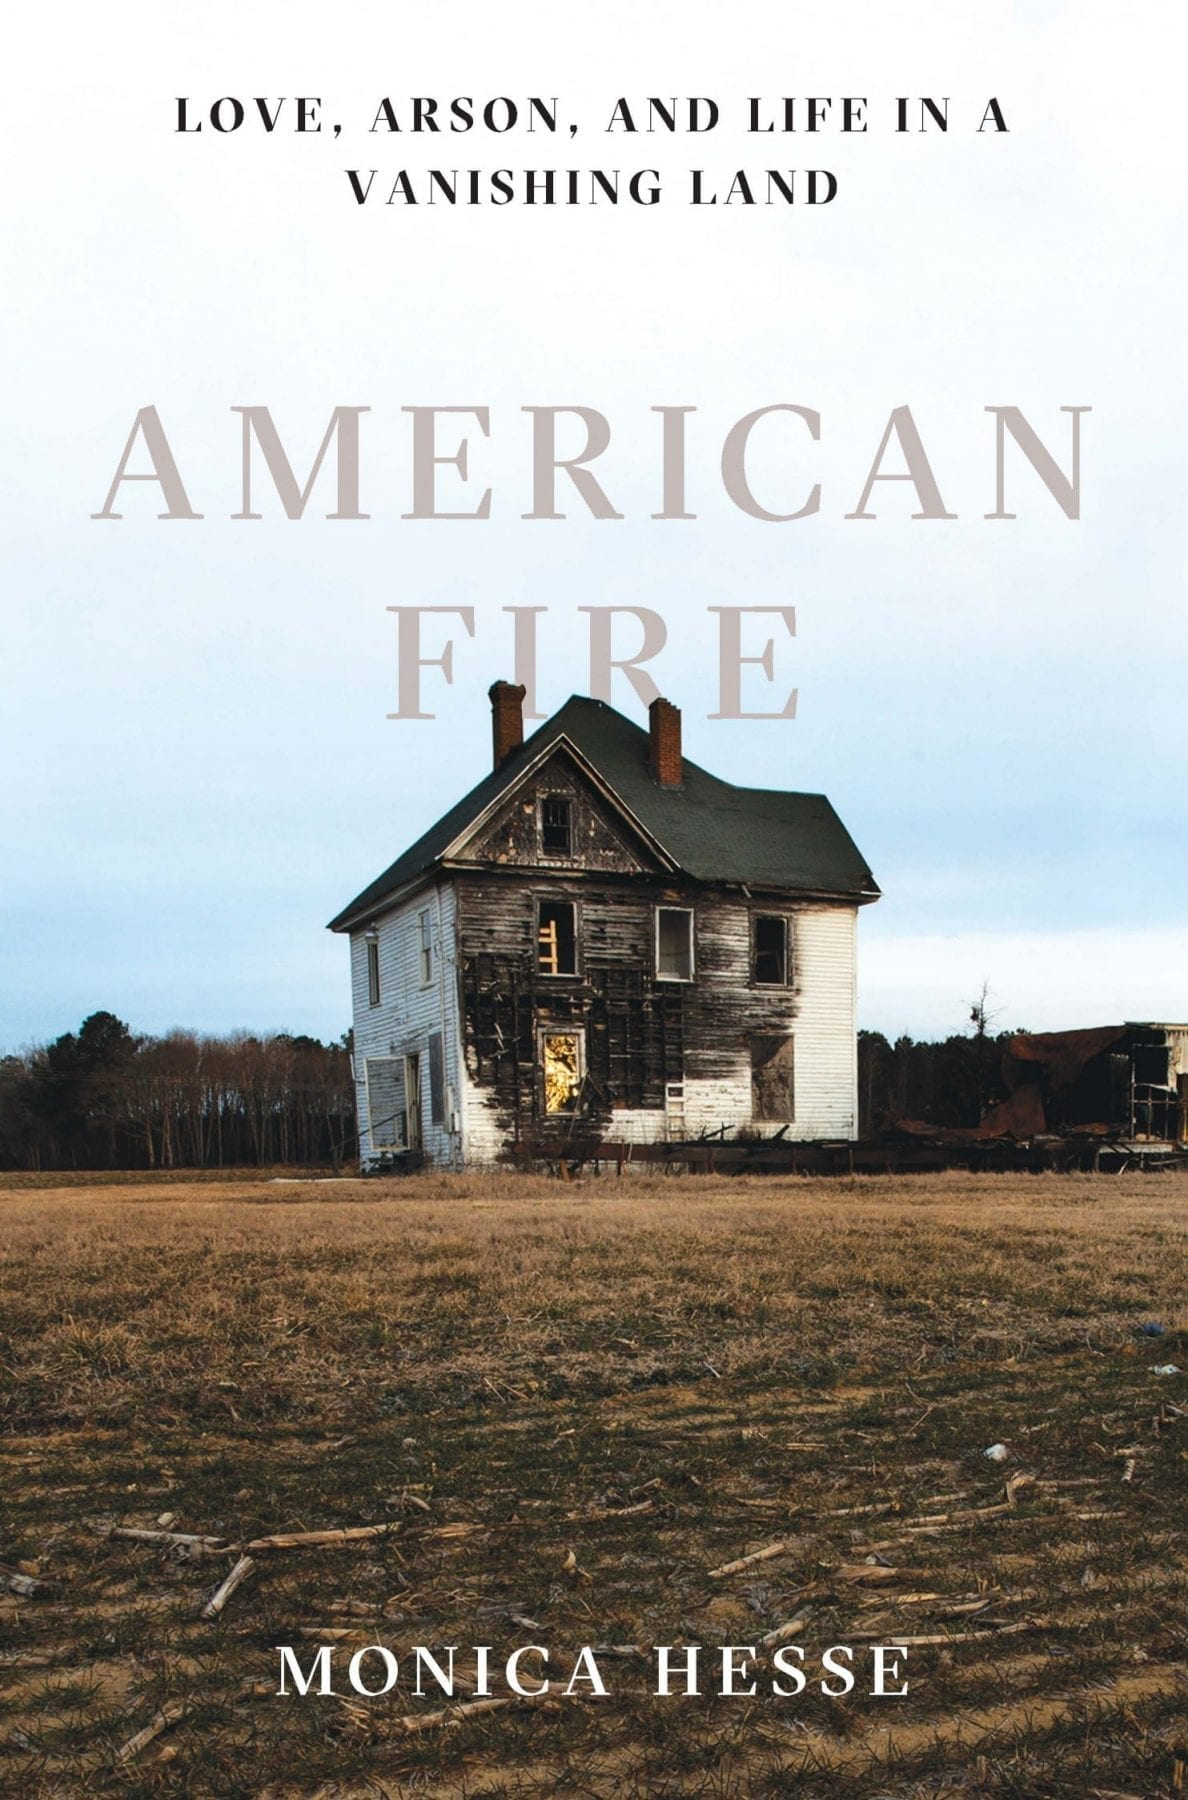 American Fire- Love, Arson and Life in a Vanishing Land by Monica Hesse